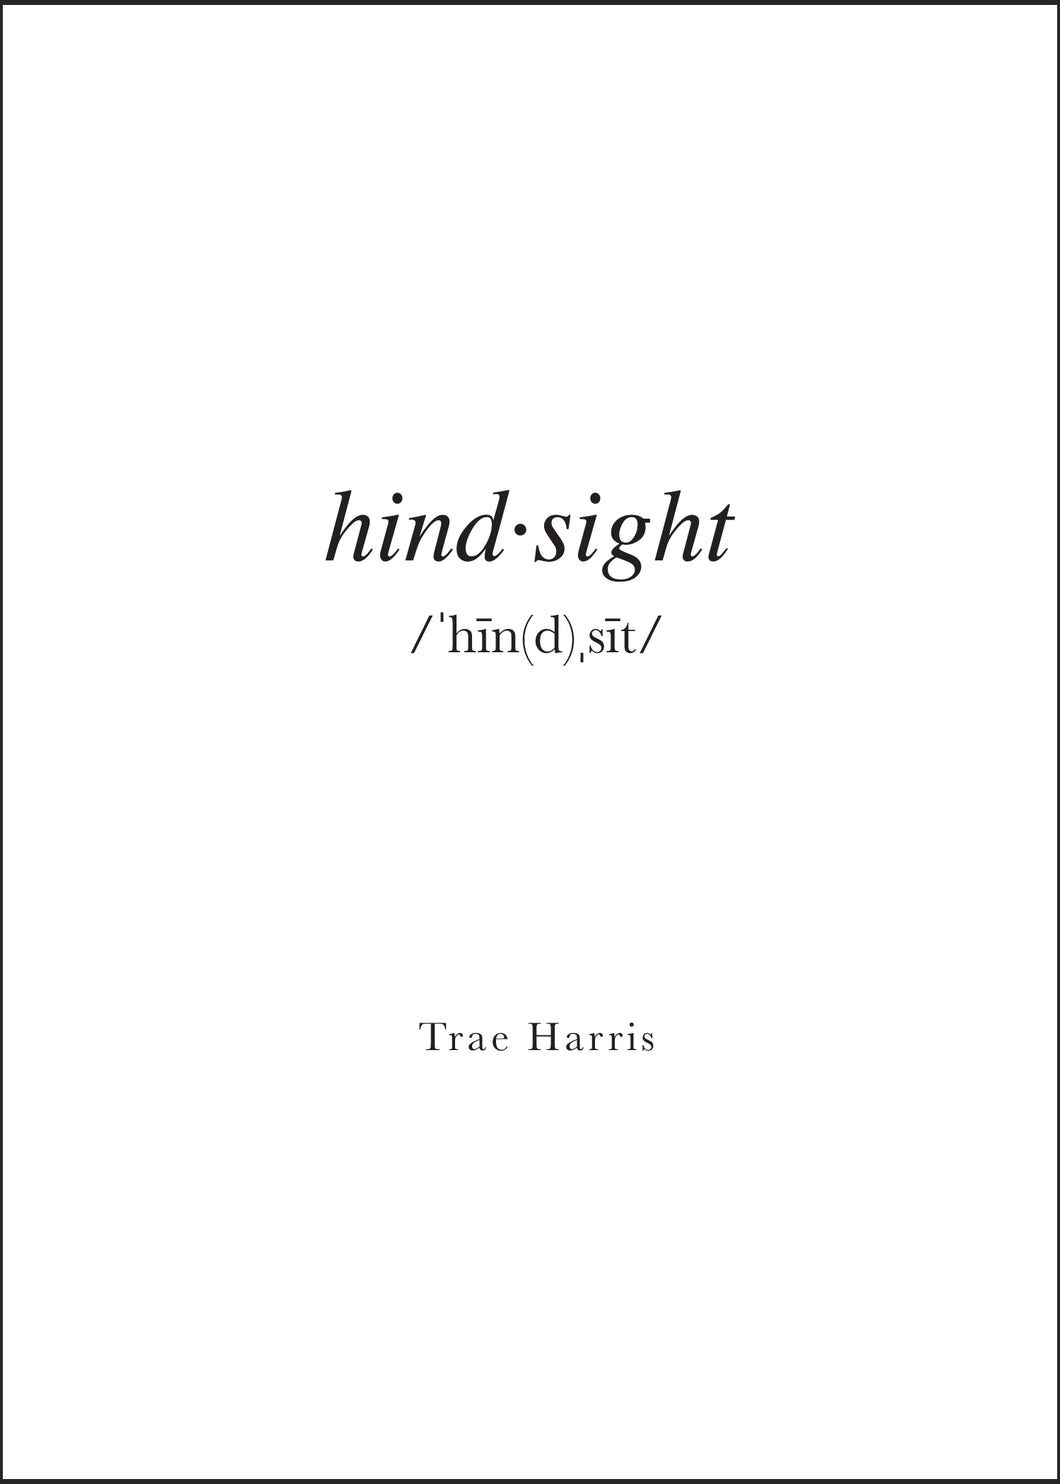 Hindsight by Trae Harris